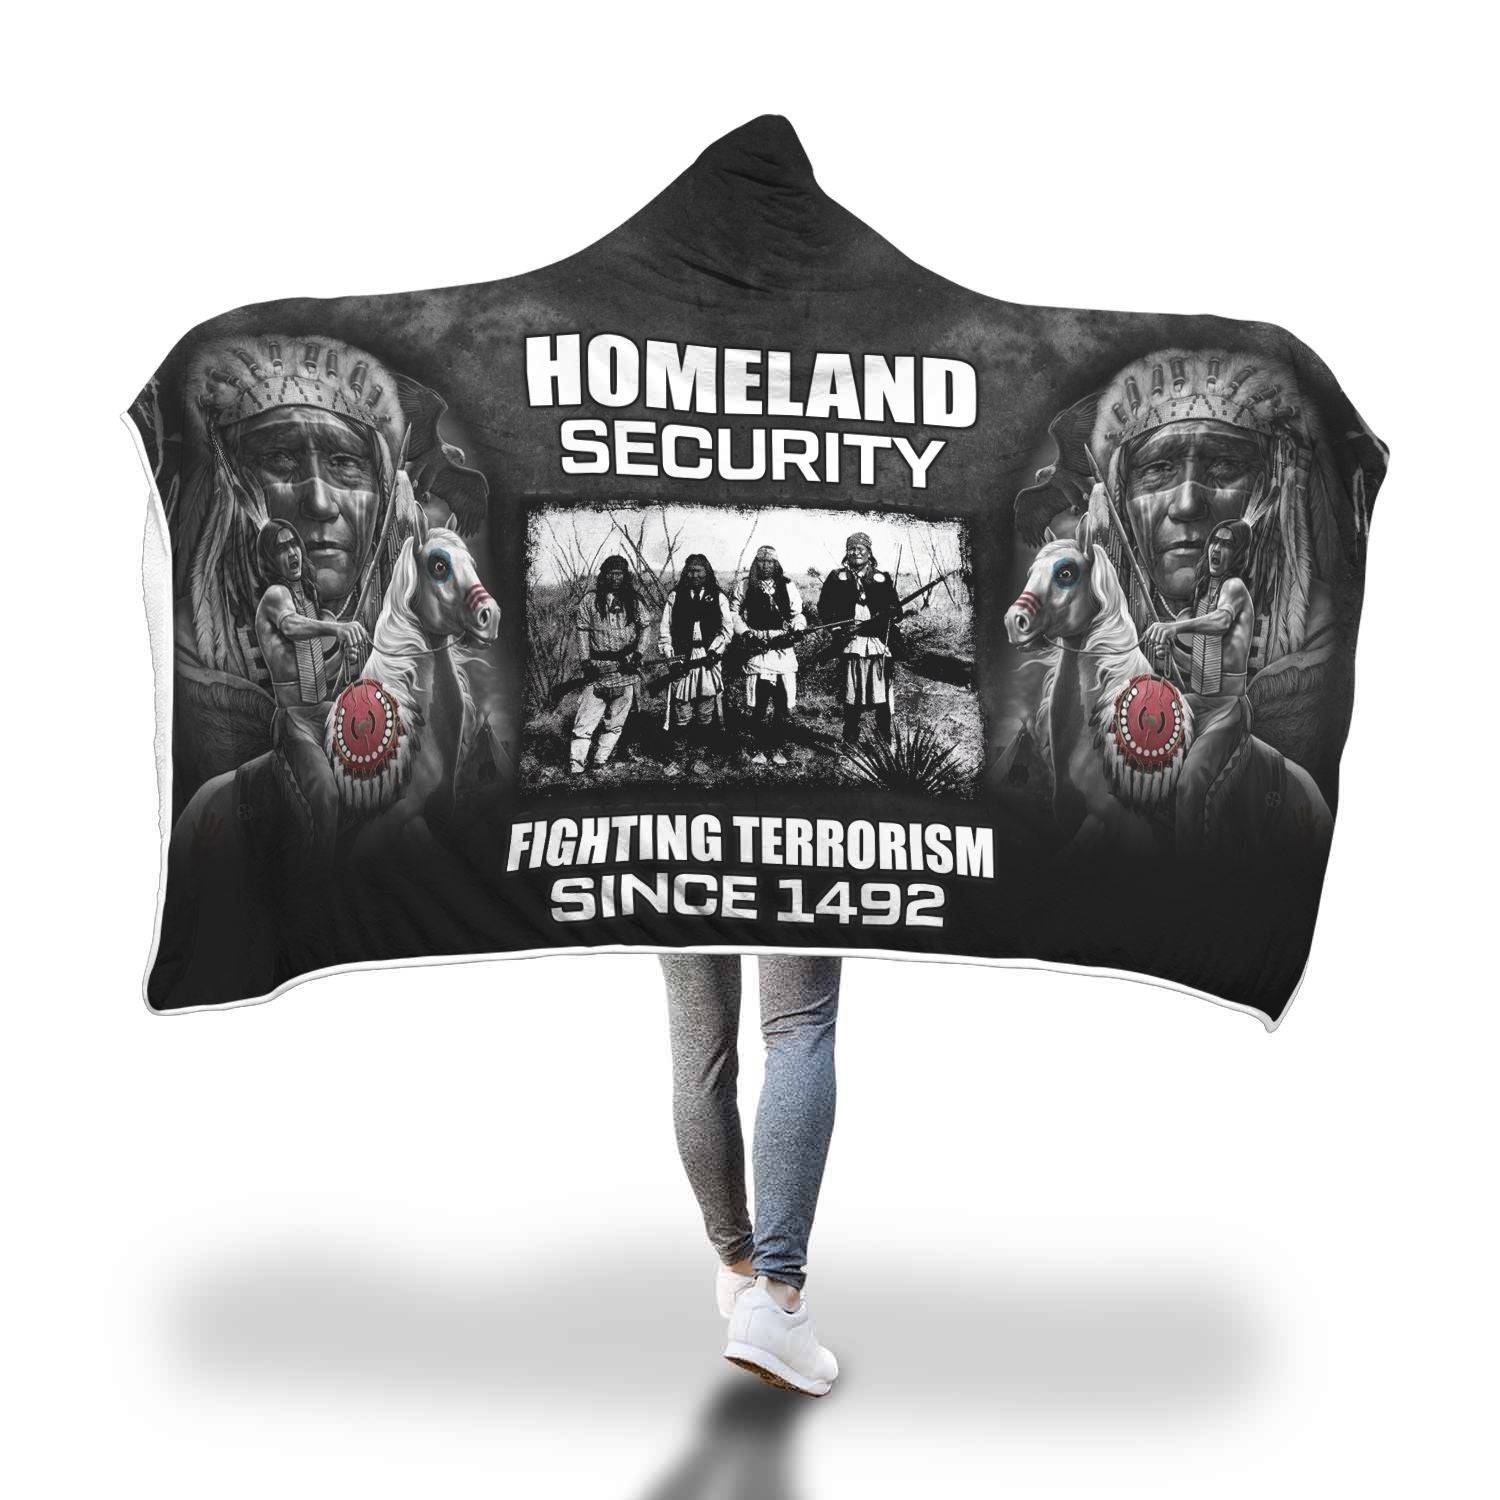 Buy Homeland security fighting terrorism since 1492 Hooded Blanket - Familyloves hoodies t-shirt jacket mug cheapest free shipping 50% off